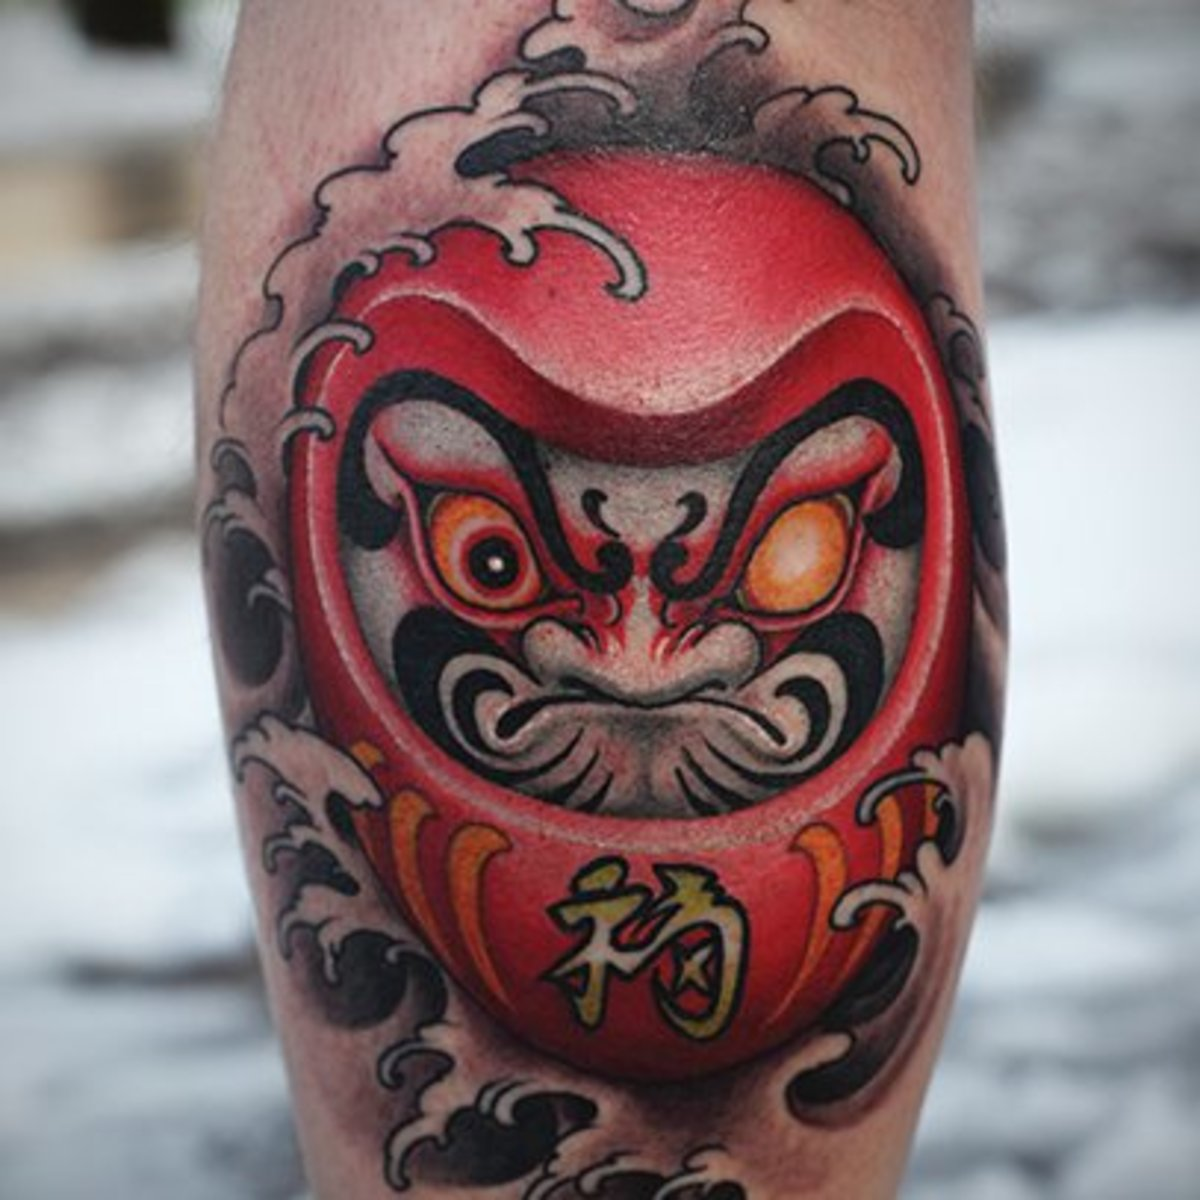 45 Japanese Tattoos With A Culture Of Their Own: Tattoo Ideas, Artists